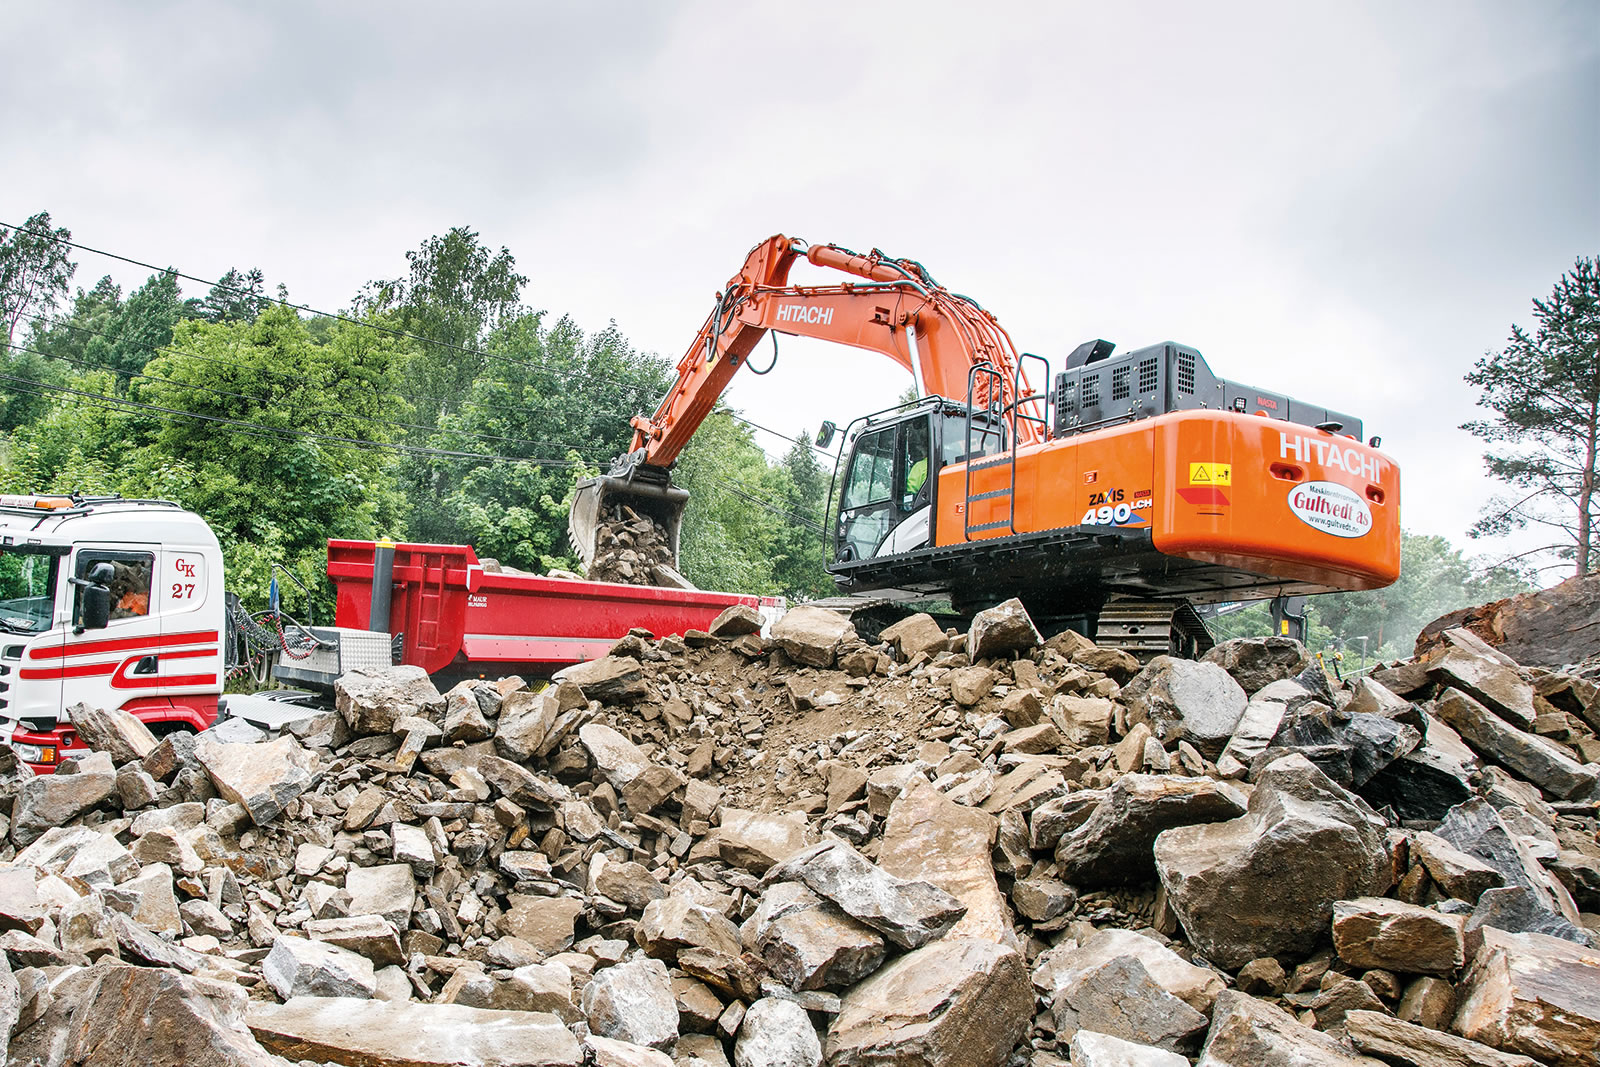 Hitachi ZX490LCH-6 excavator breaks up rock